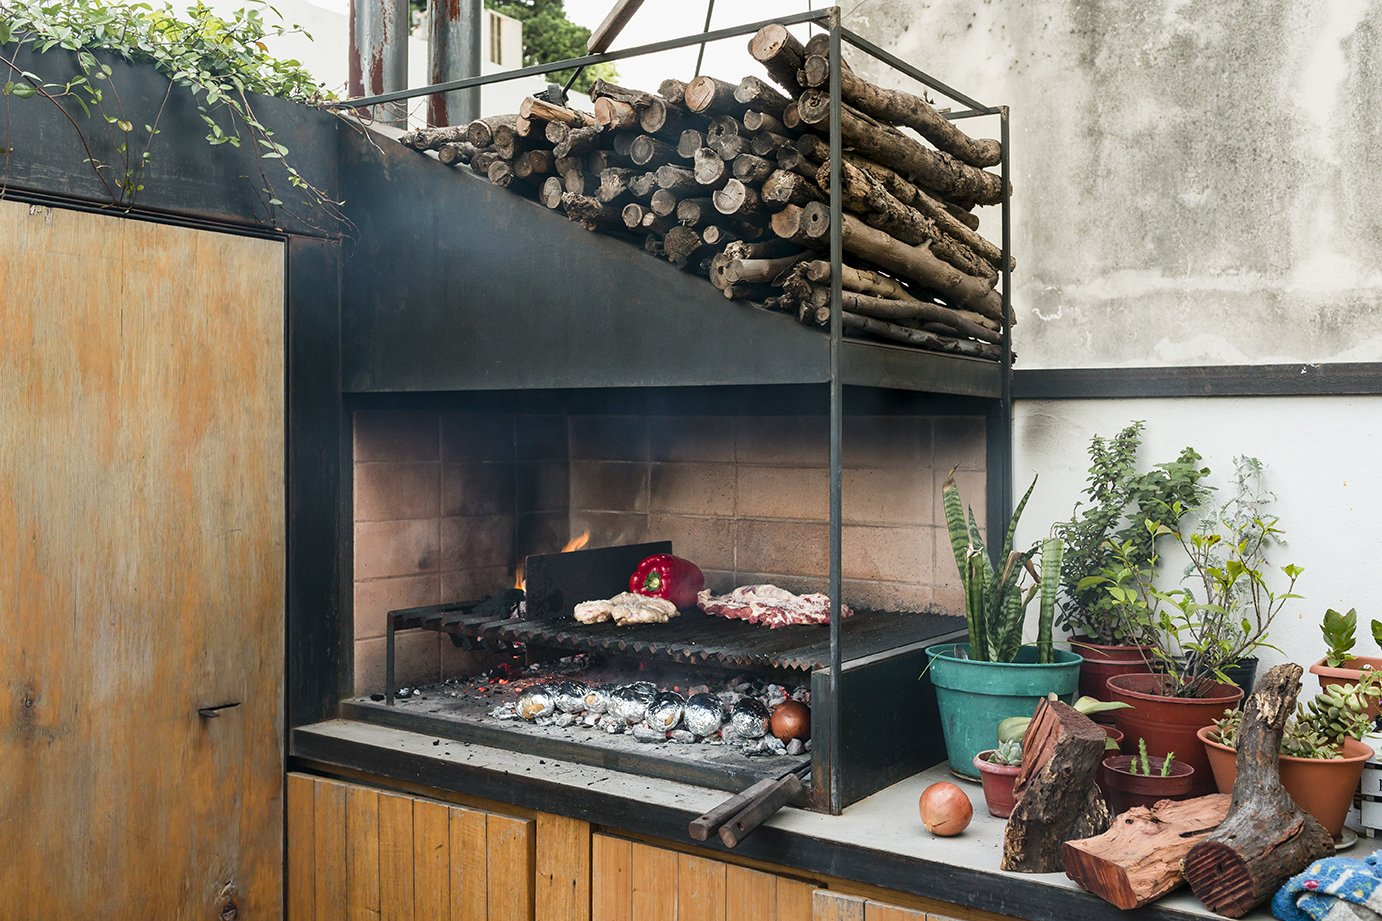 Outdoor and Small Patio, Porch, Deck A sleek version of the traditional  parrilla, or grill, handcrafted  by Oficios Asociados, has pride  of place on the patio counter. - Buenos Aires, Argentina Dwell Magazine : September / October 2017  Best Photos from An Architect Turns His Small, Dark Apartment in Buenos Aires Into a Bright and Airy Home